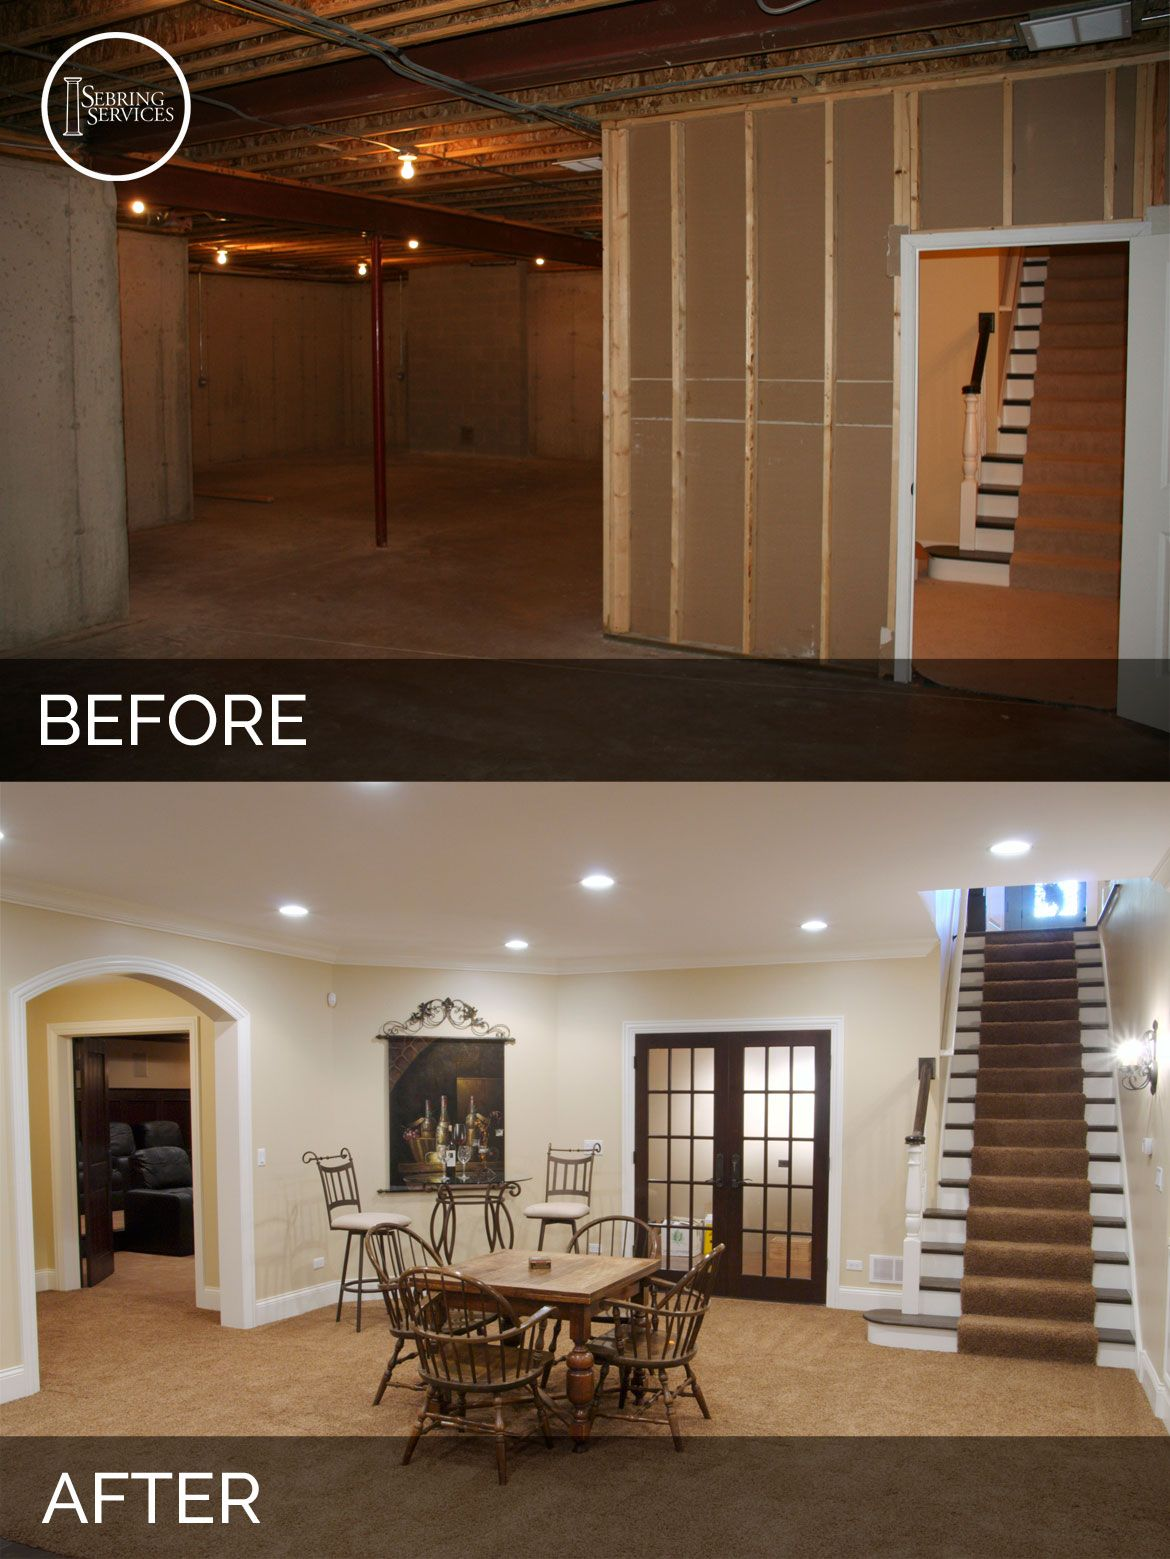 steve elaine 39 s basement before after pictures basements house and finished basements. Black Bedroom Furniture Sets. Home Design Ideas